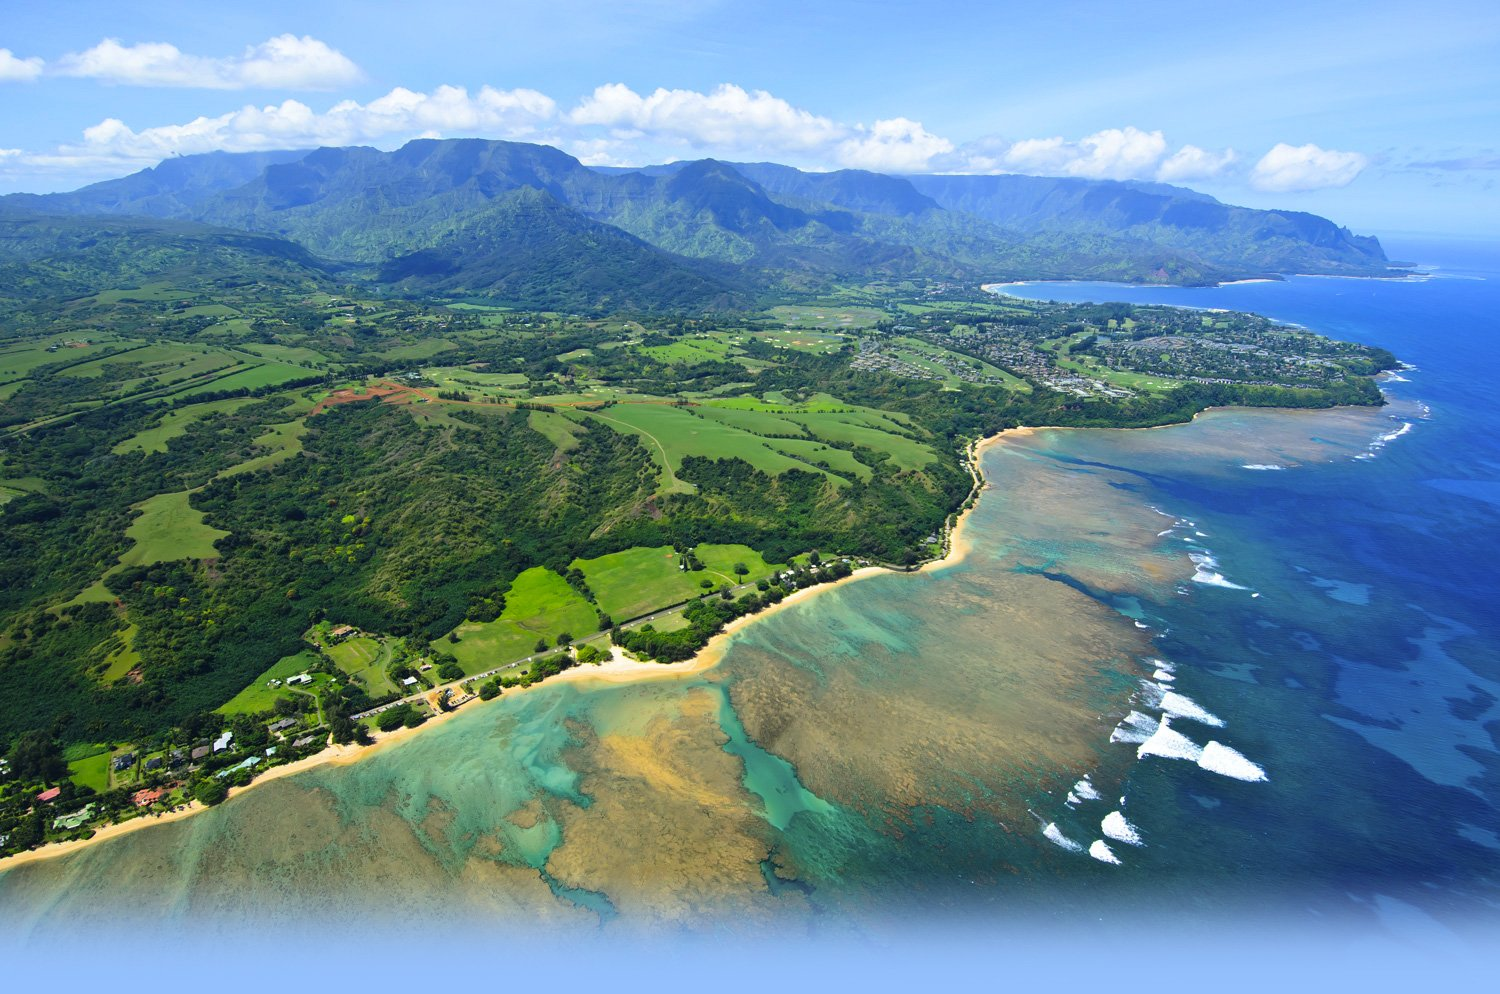 Princeville Vacation Packages - Princeville at Hanalei, Kauai